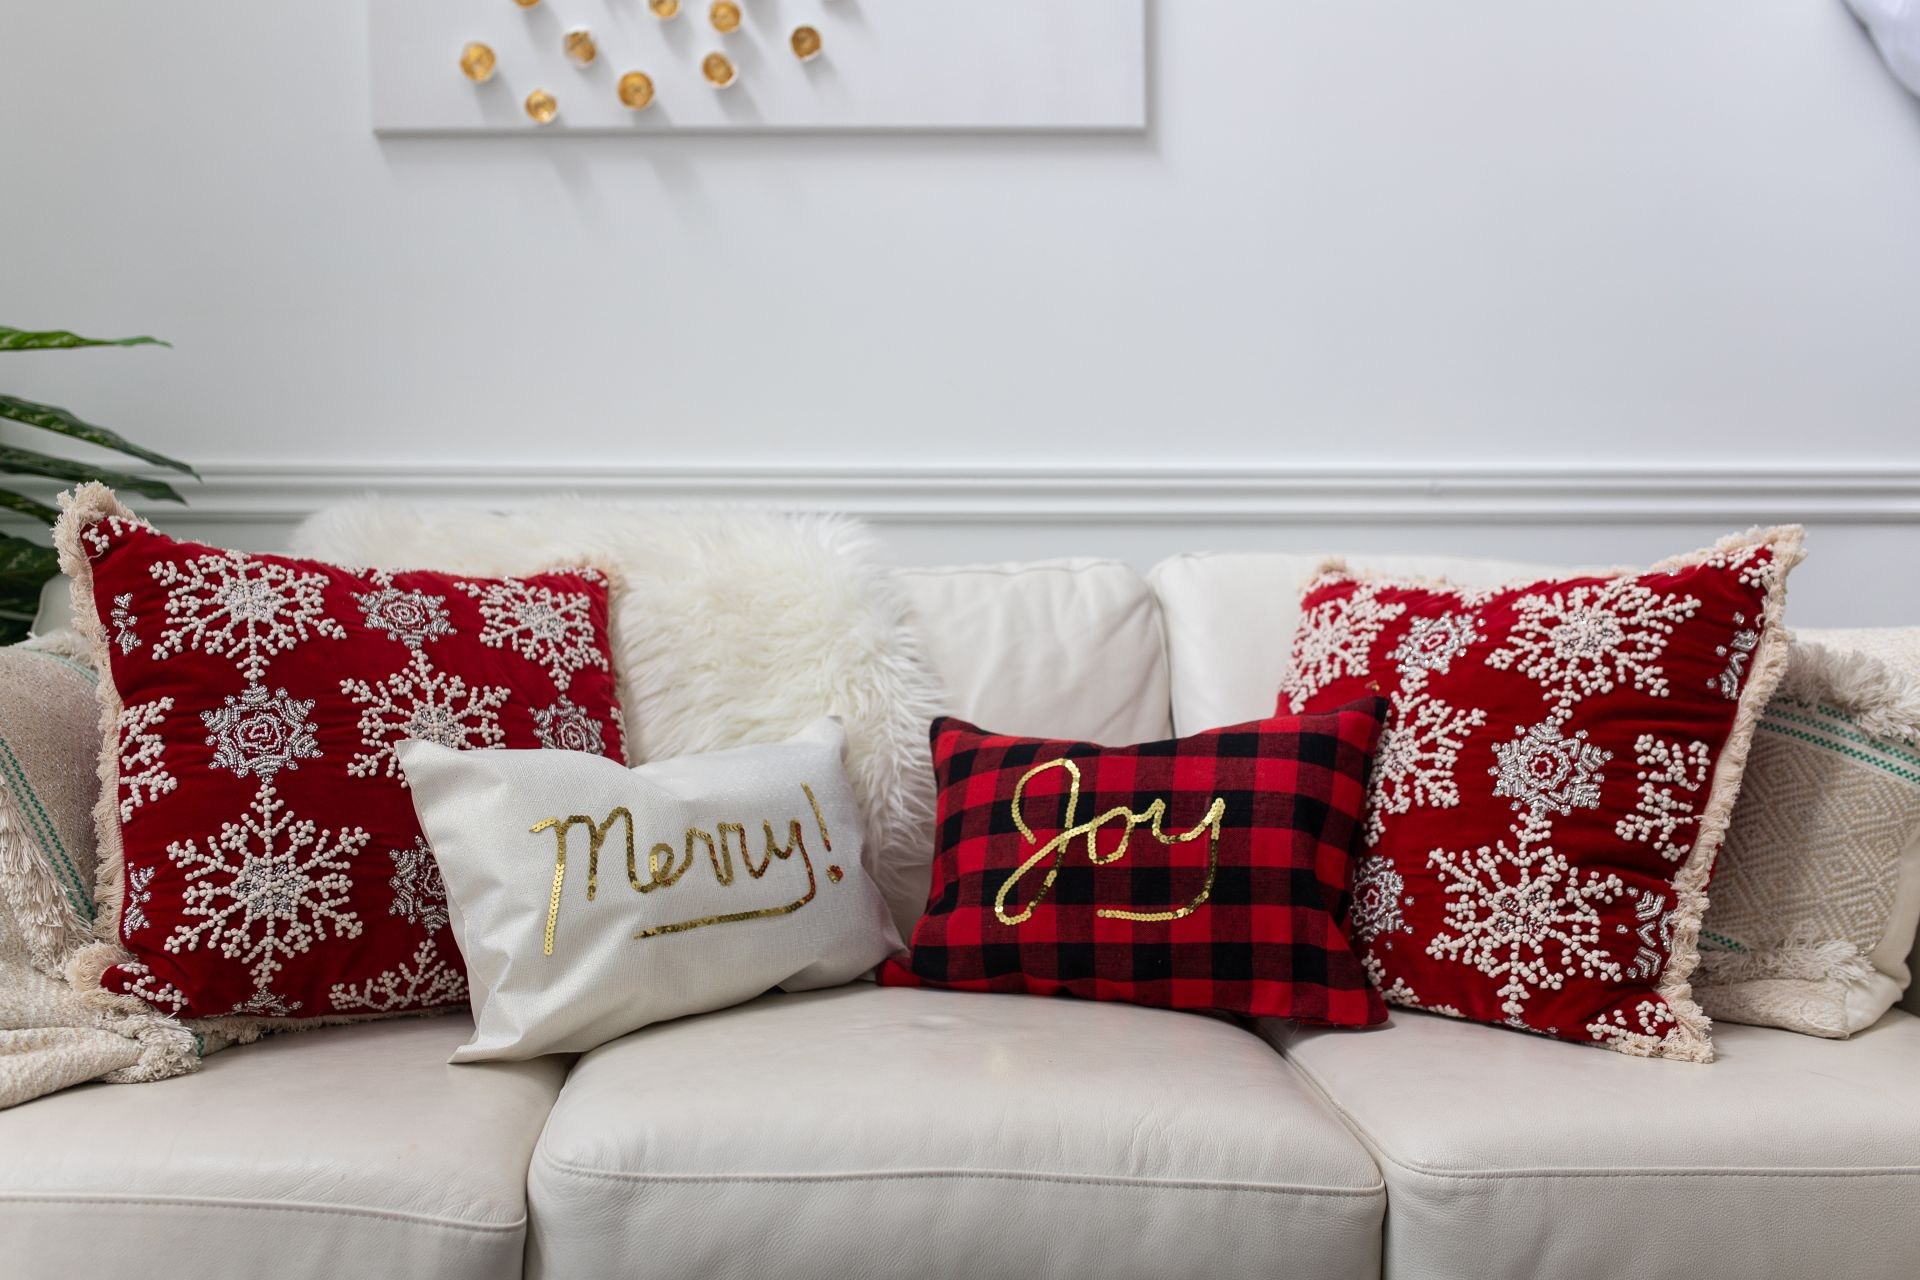 DIY Christmas Placemat Pillows Tutorial